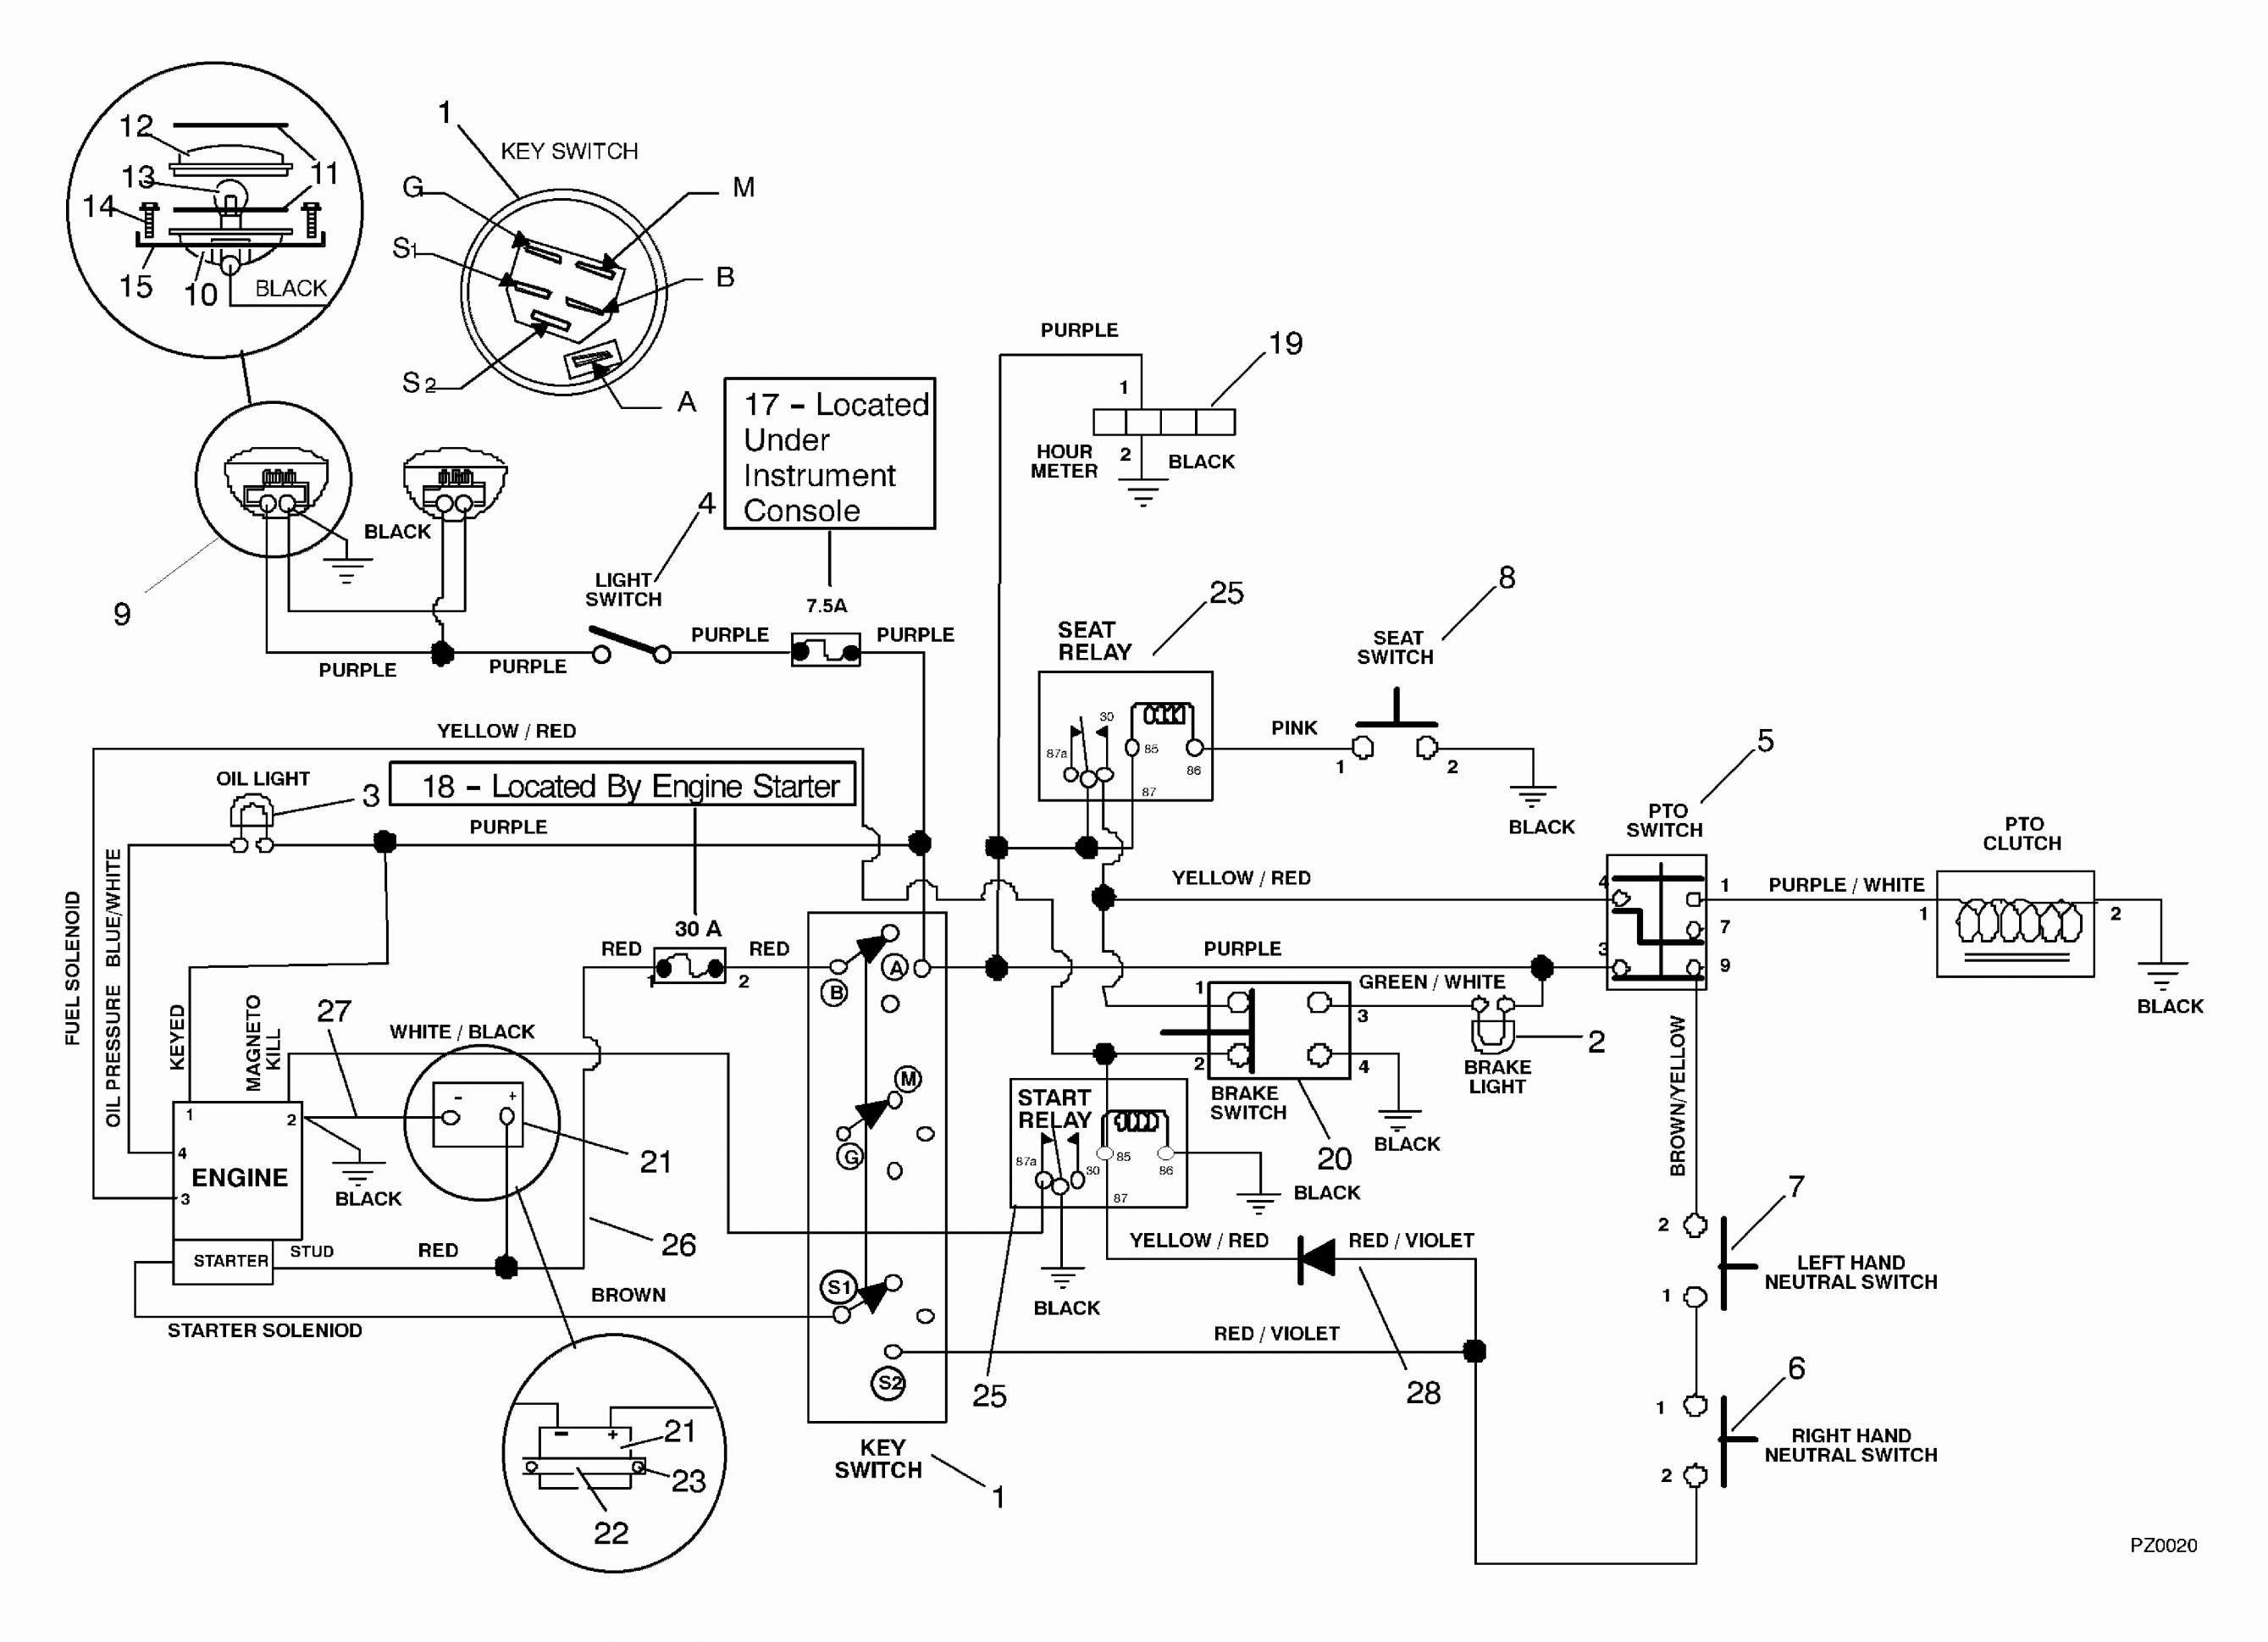 15 Wiring Diagram For Lawn Mower Kohler Engine Engine Diagram Wiringg Net Diagram Engineering Kohler Engines